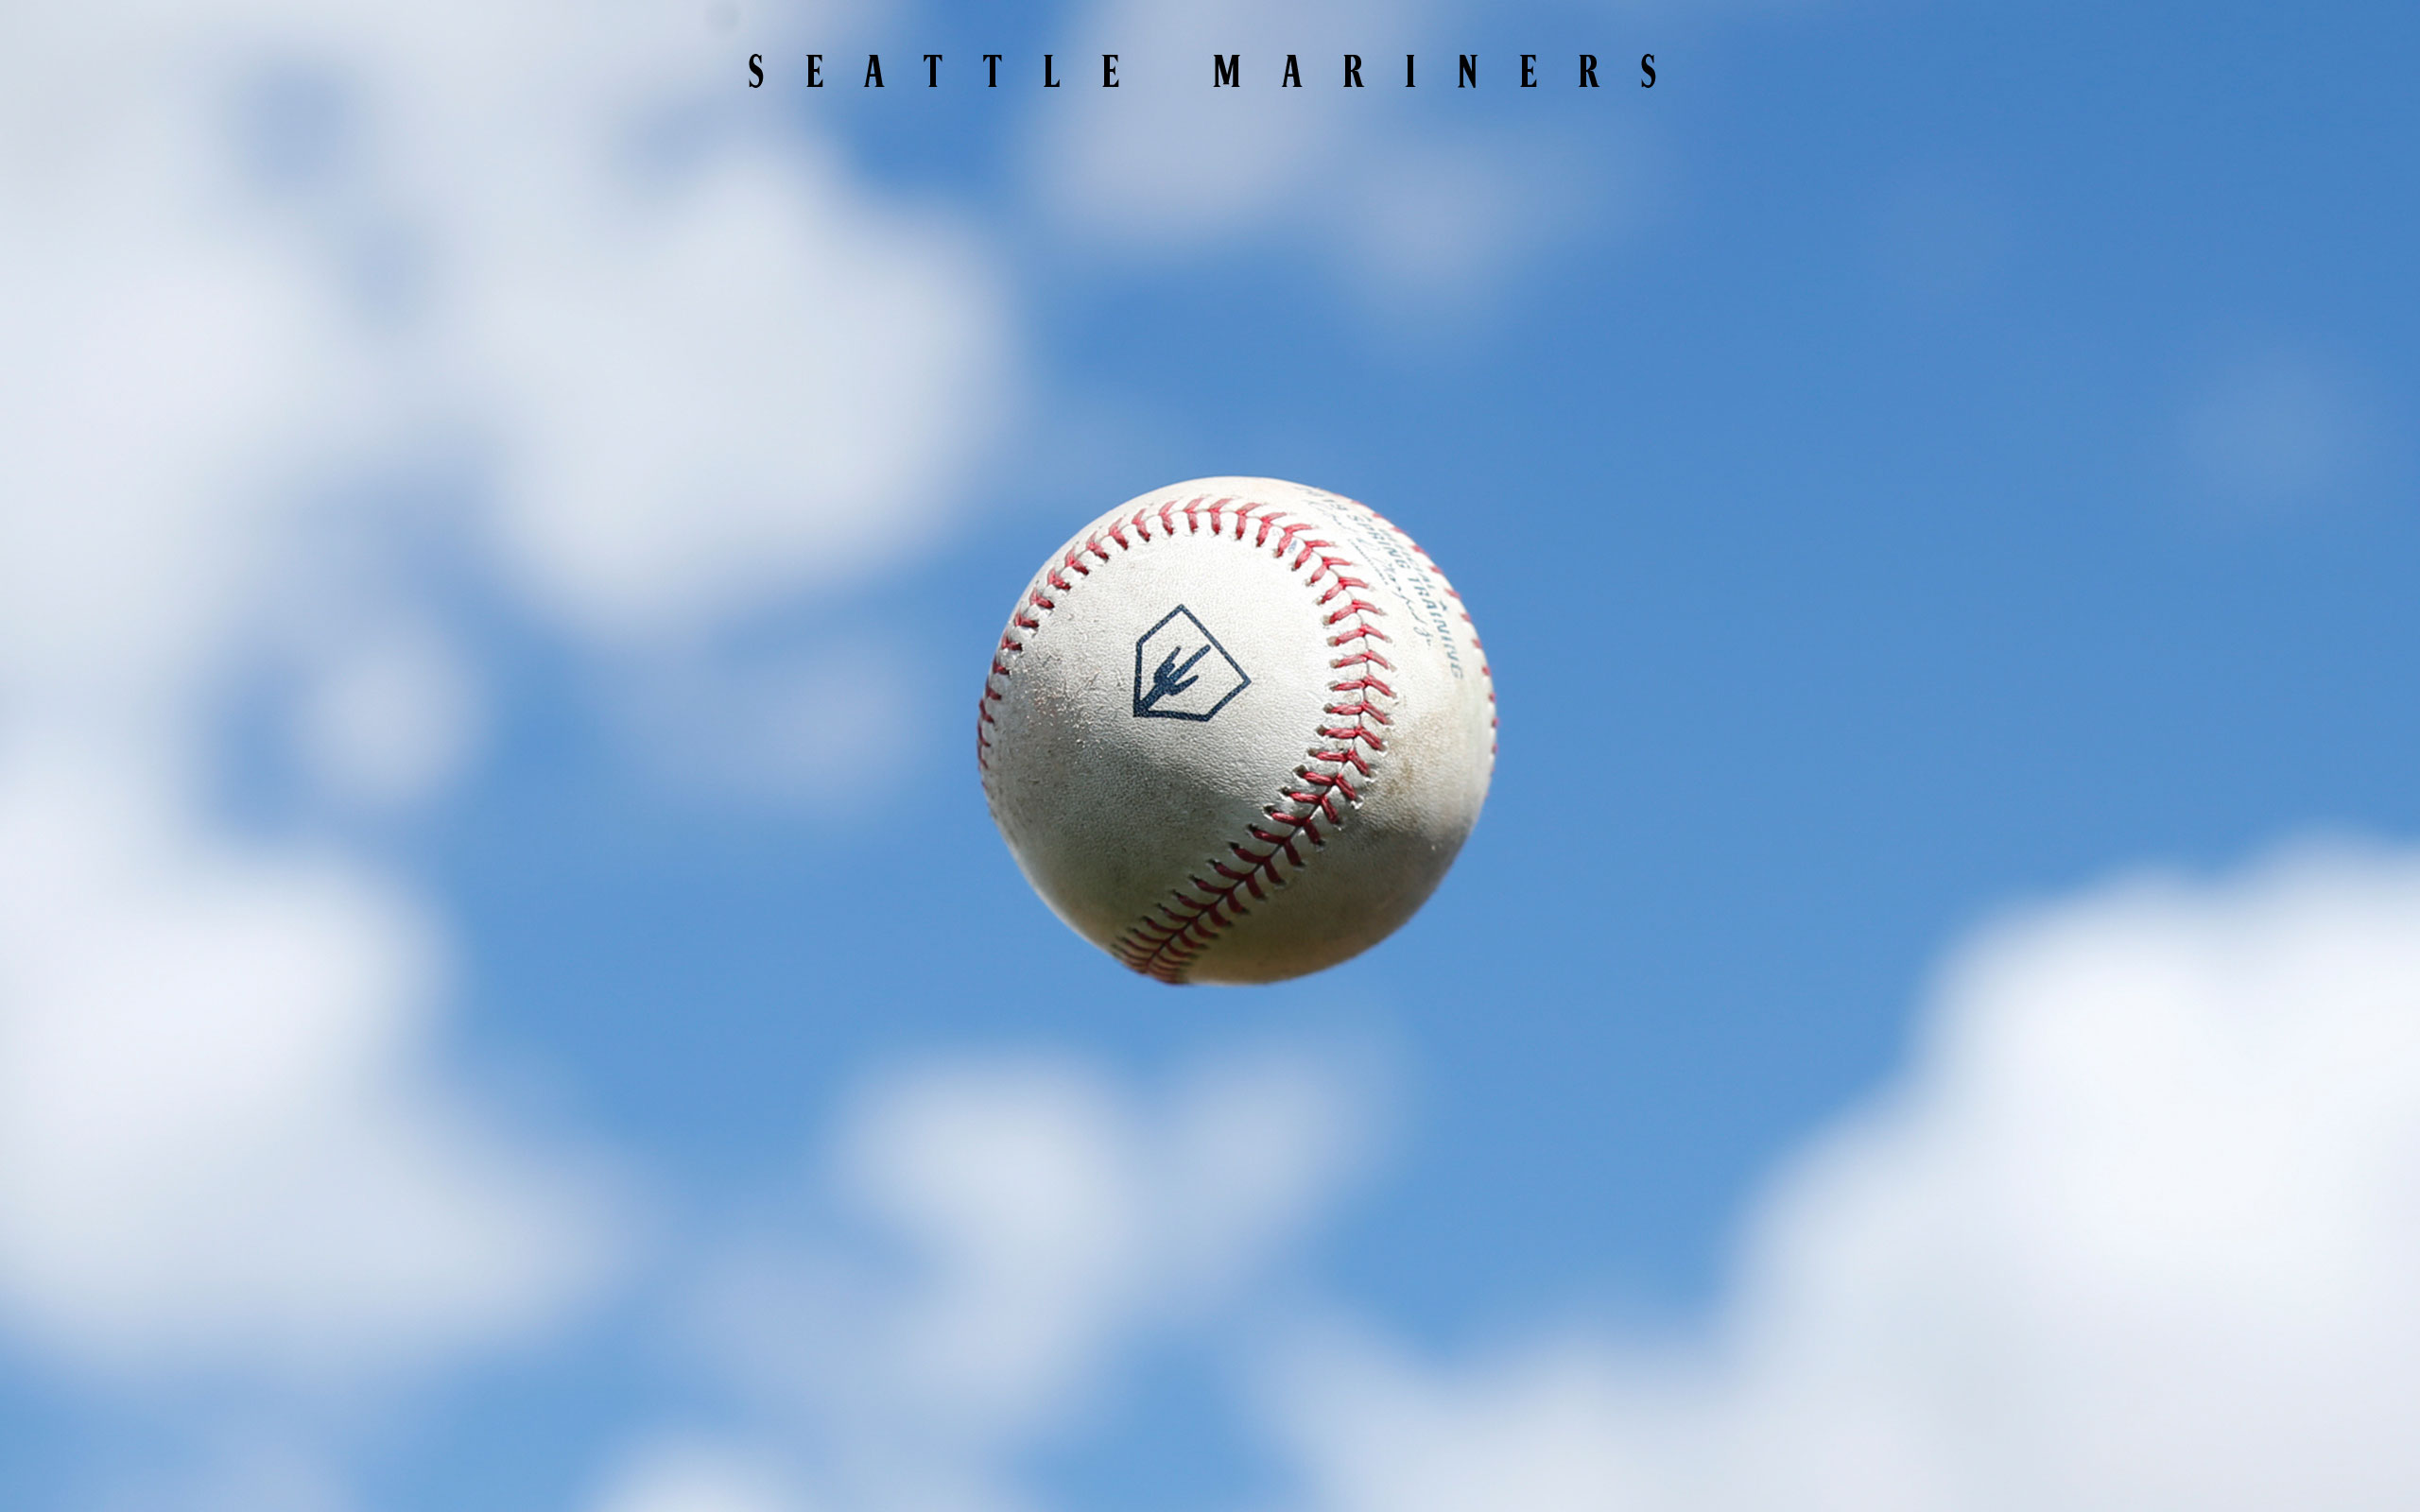 Mariners Wallpapers Seattle Mariners